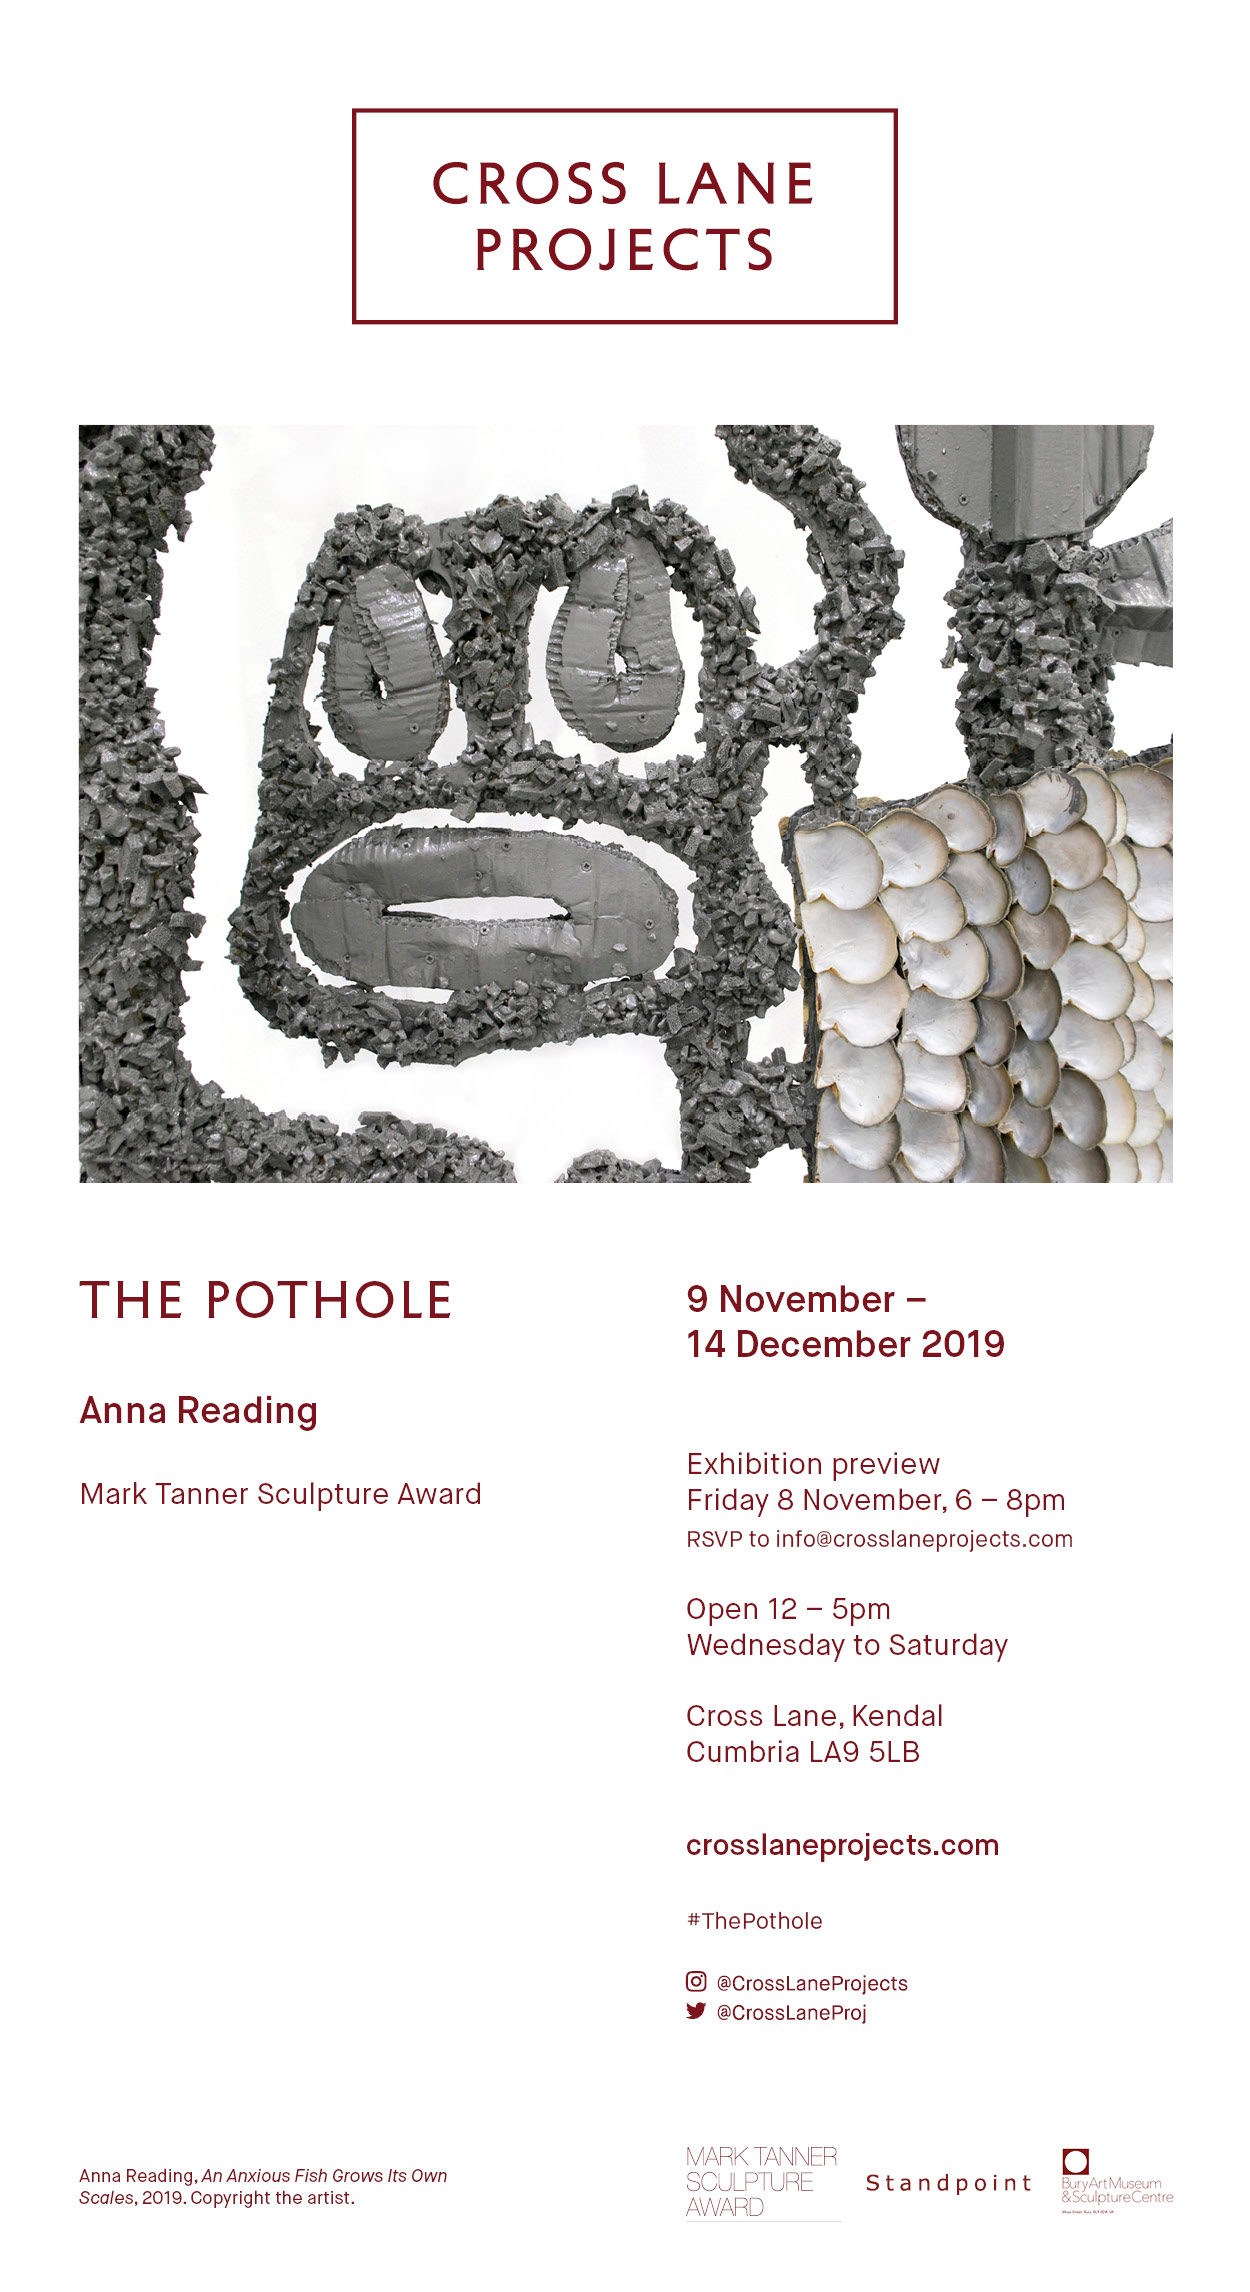 The Pothole - Cross Lane Projects